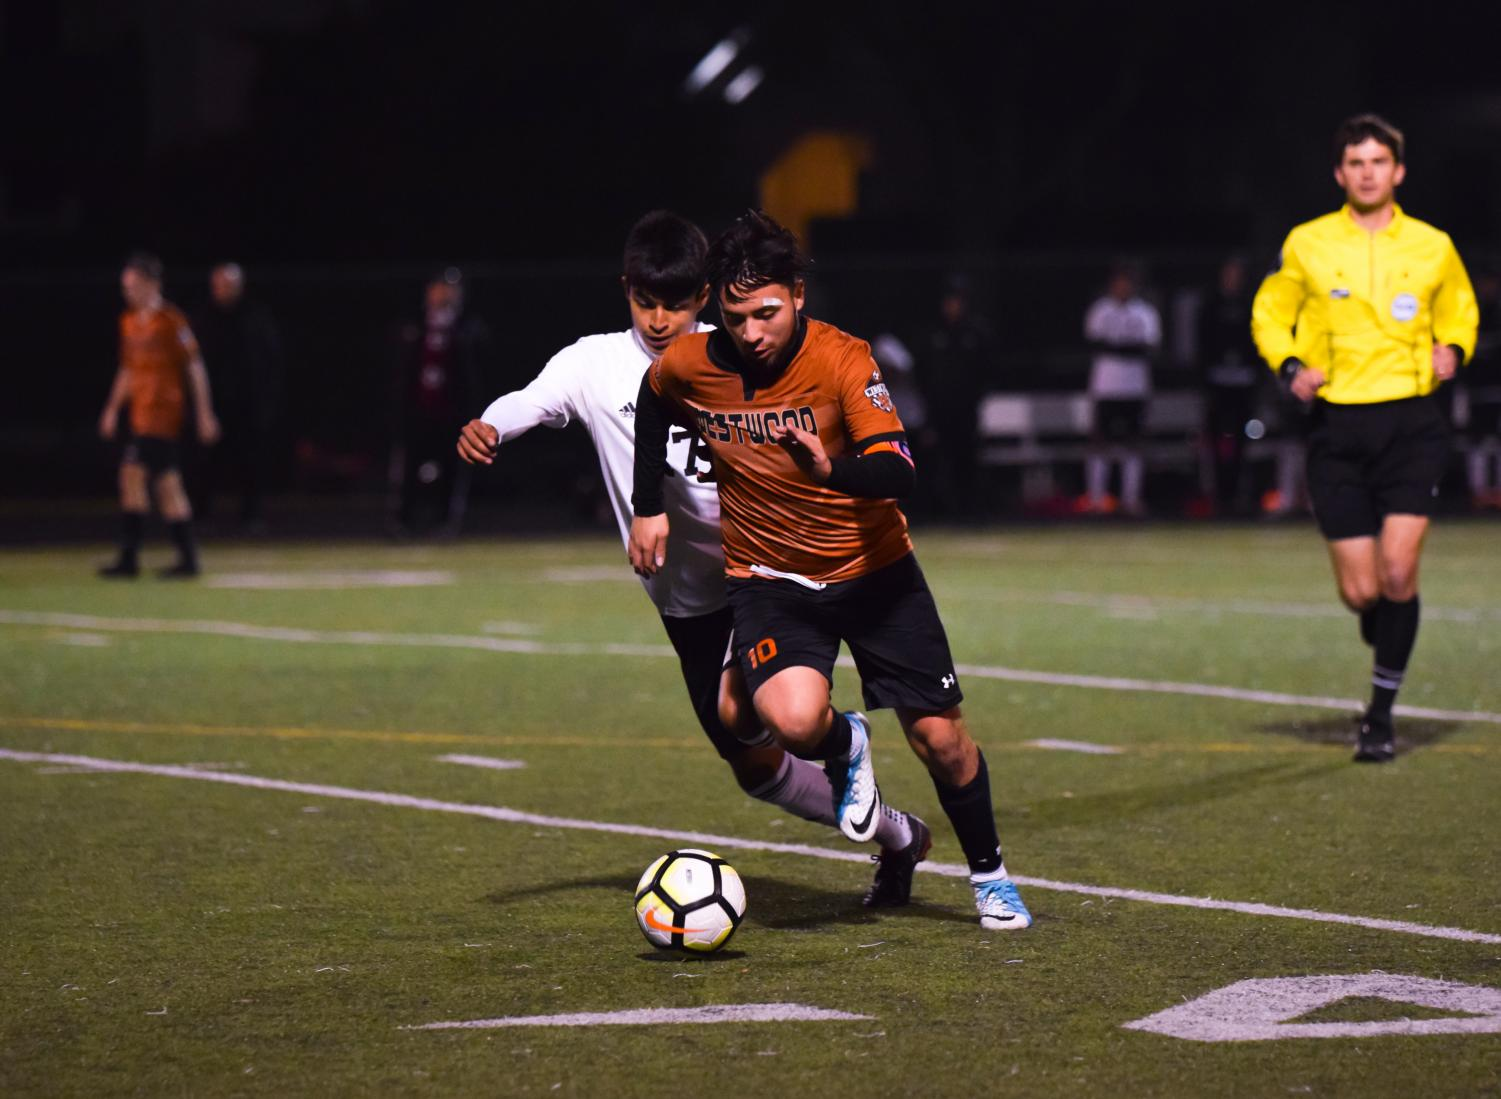 Varsity+Boys%27+Soccer+Dominates+Dragons+in+Second+Half+Victory